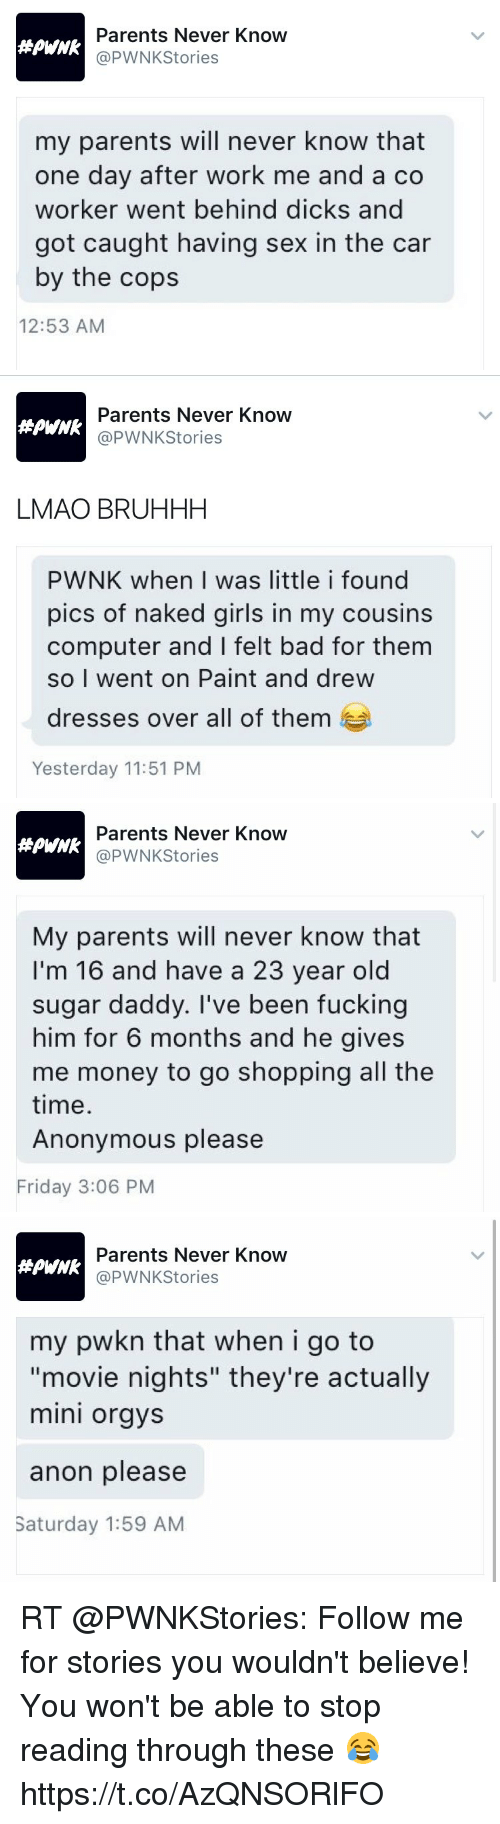 """Bad, Cars, and Dicks: Parents Never Know  @PWNKStories  my parents will never know that  one day after work me and a co  worker went behind dicks and  got caught having sex in the car  by the cops  12:53 AM   Parents Never Know  @PWNKStories  #PHNk  LMAO BRUHHH  PWNK when I was little i found  pics of naked girls in my cousins  computer and I felt bad for them  so I went on Paint and drew  dresses over all of them  Yesterday 11:51 PM   Parents Never Know  @PWNKStories  My parents will never know that  I'm 16 and have a 23 year old  sugar daddy. I've been fucking  him for 6 months and he gives  me money to go shopping all the  time  Anonymous please  Friday 3:06 PM   Parents Never Know  @PWNKStories  my pwkn that when i go to  """"movie nights"""" they're actually  mini orgys  anon please  Saturday 1:59 AM RT @PWNKStories: Follow me for stories you wouldn't believe! You won't be able to stop reading through these 😂 https://t.co/AzQNSORlFO"""